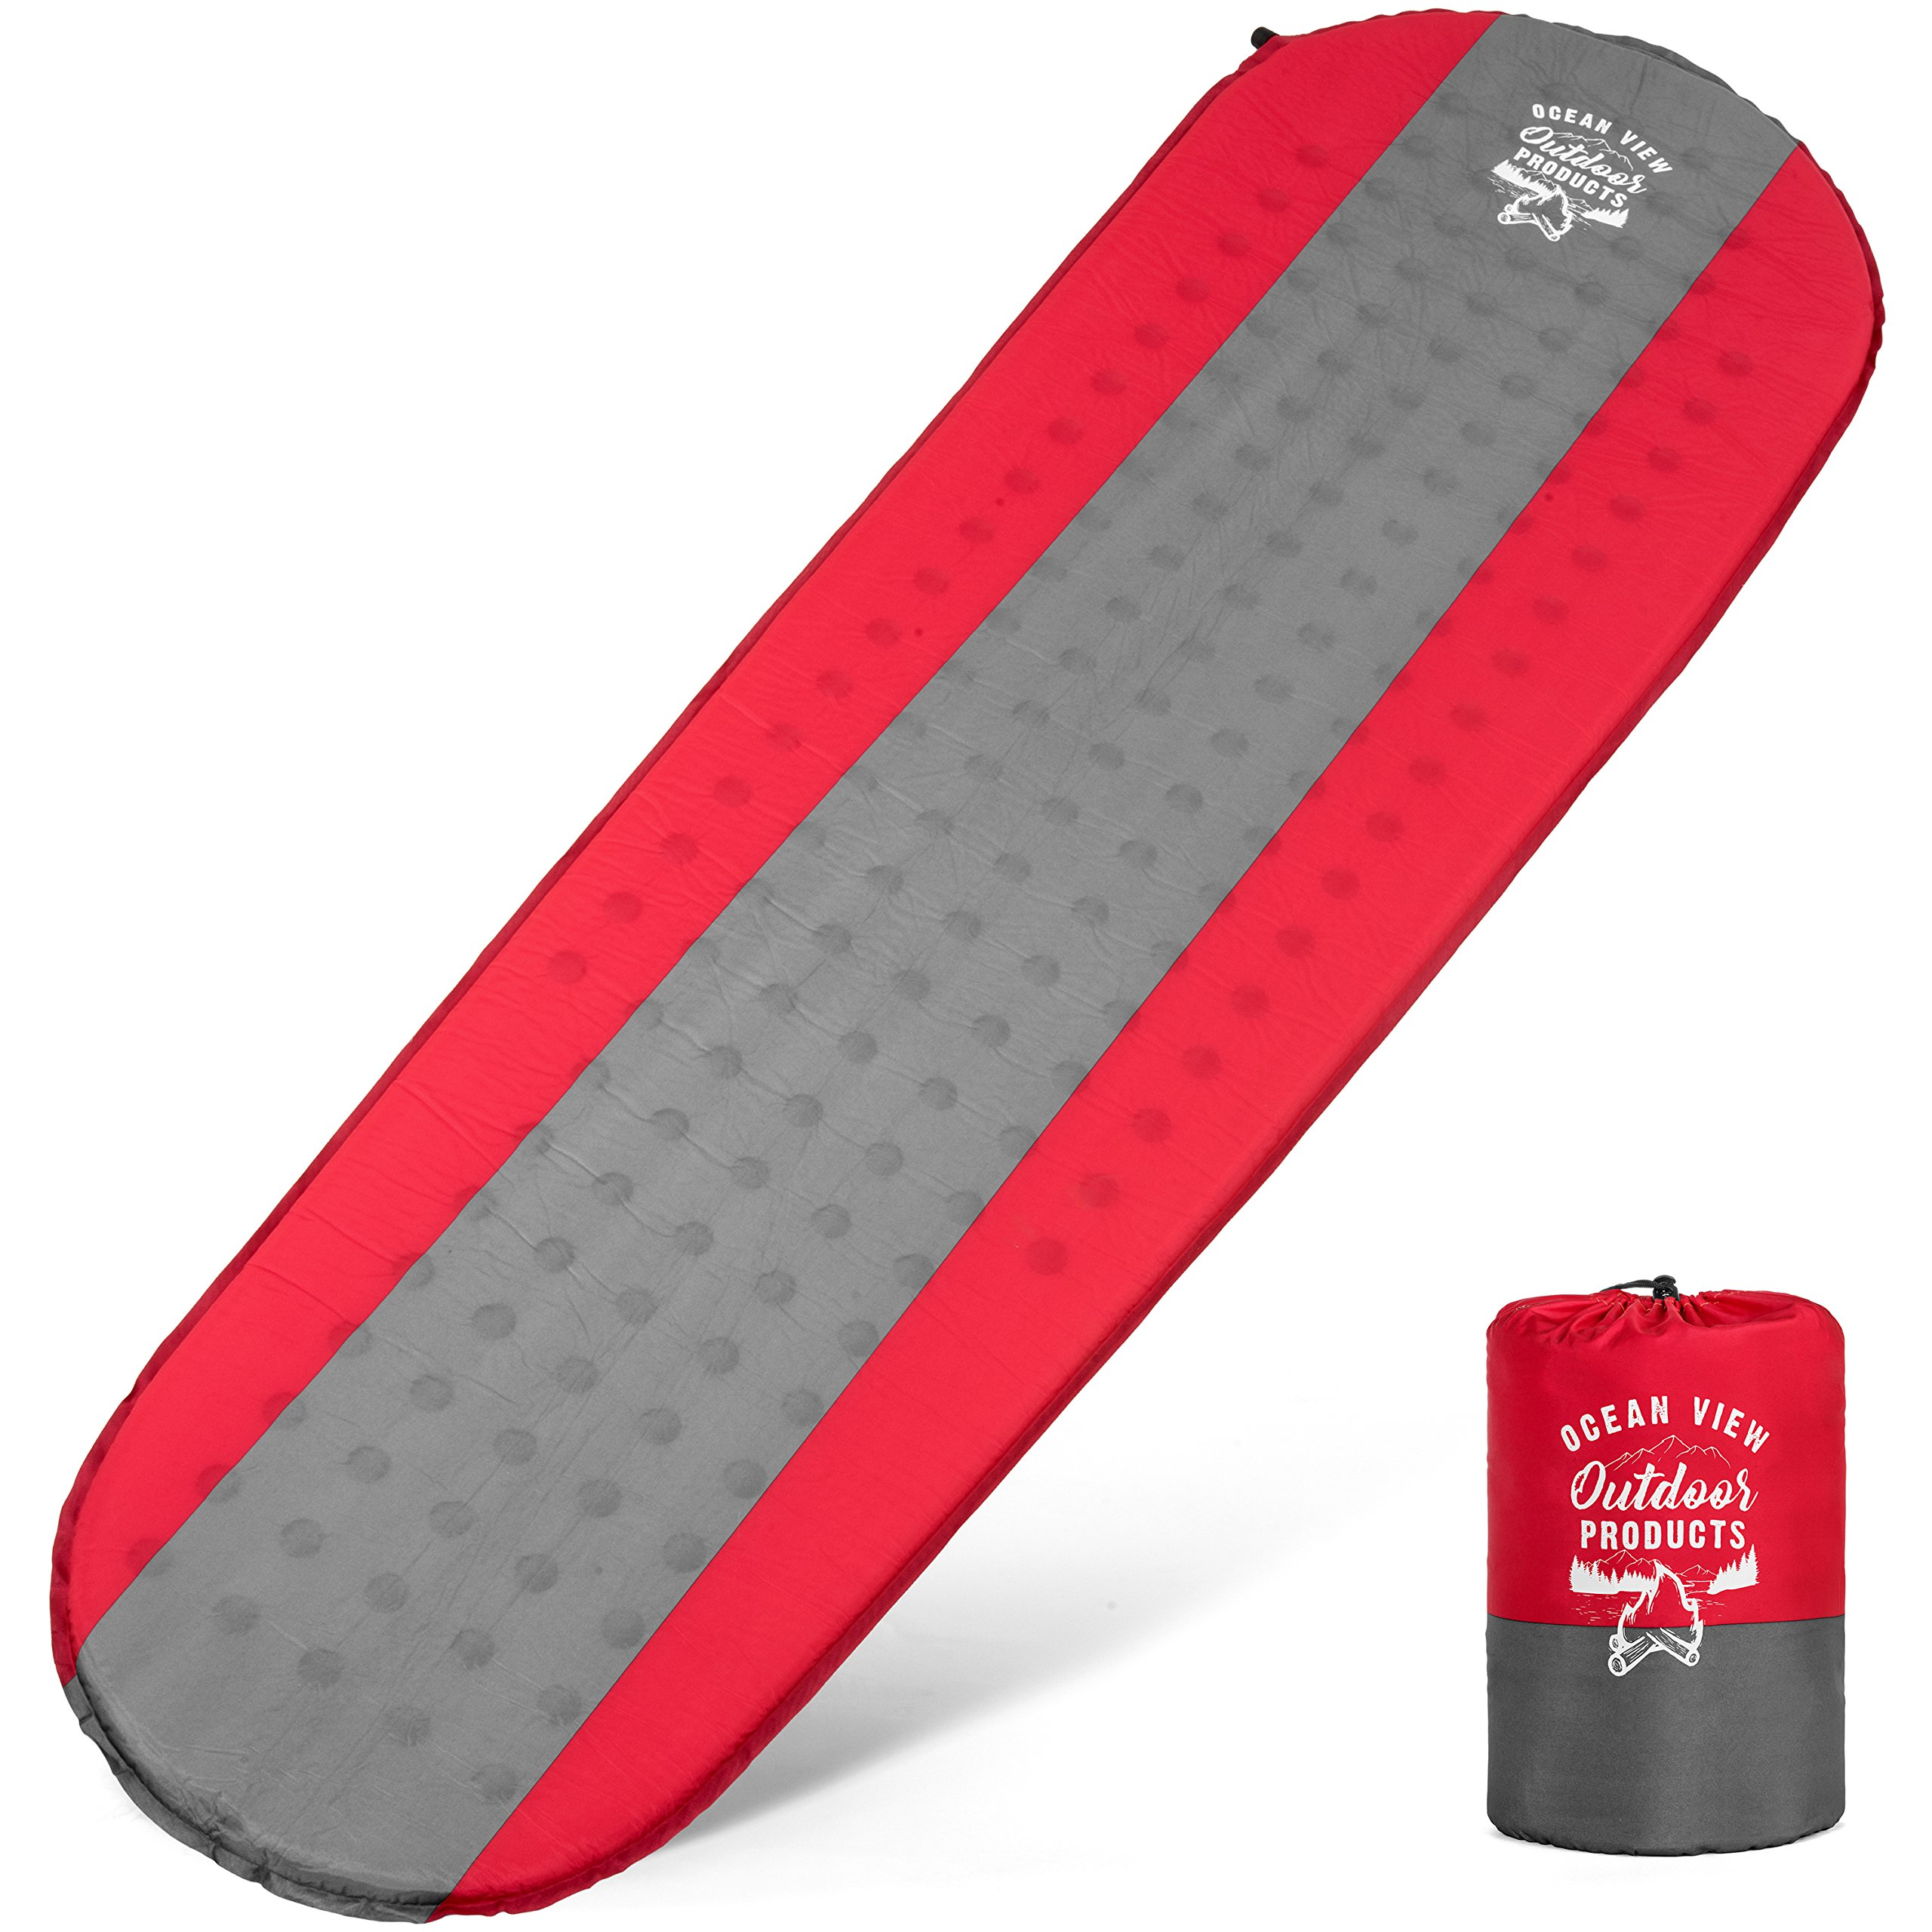 Ocean View Outdoors Sleeping Pad for Campers, Hikers and All Outdoor Adventurists. You Will Love This Fast Inflating Sleeping pad; Lightweight, Easy to Carry, Compact